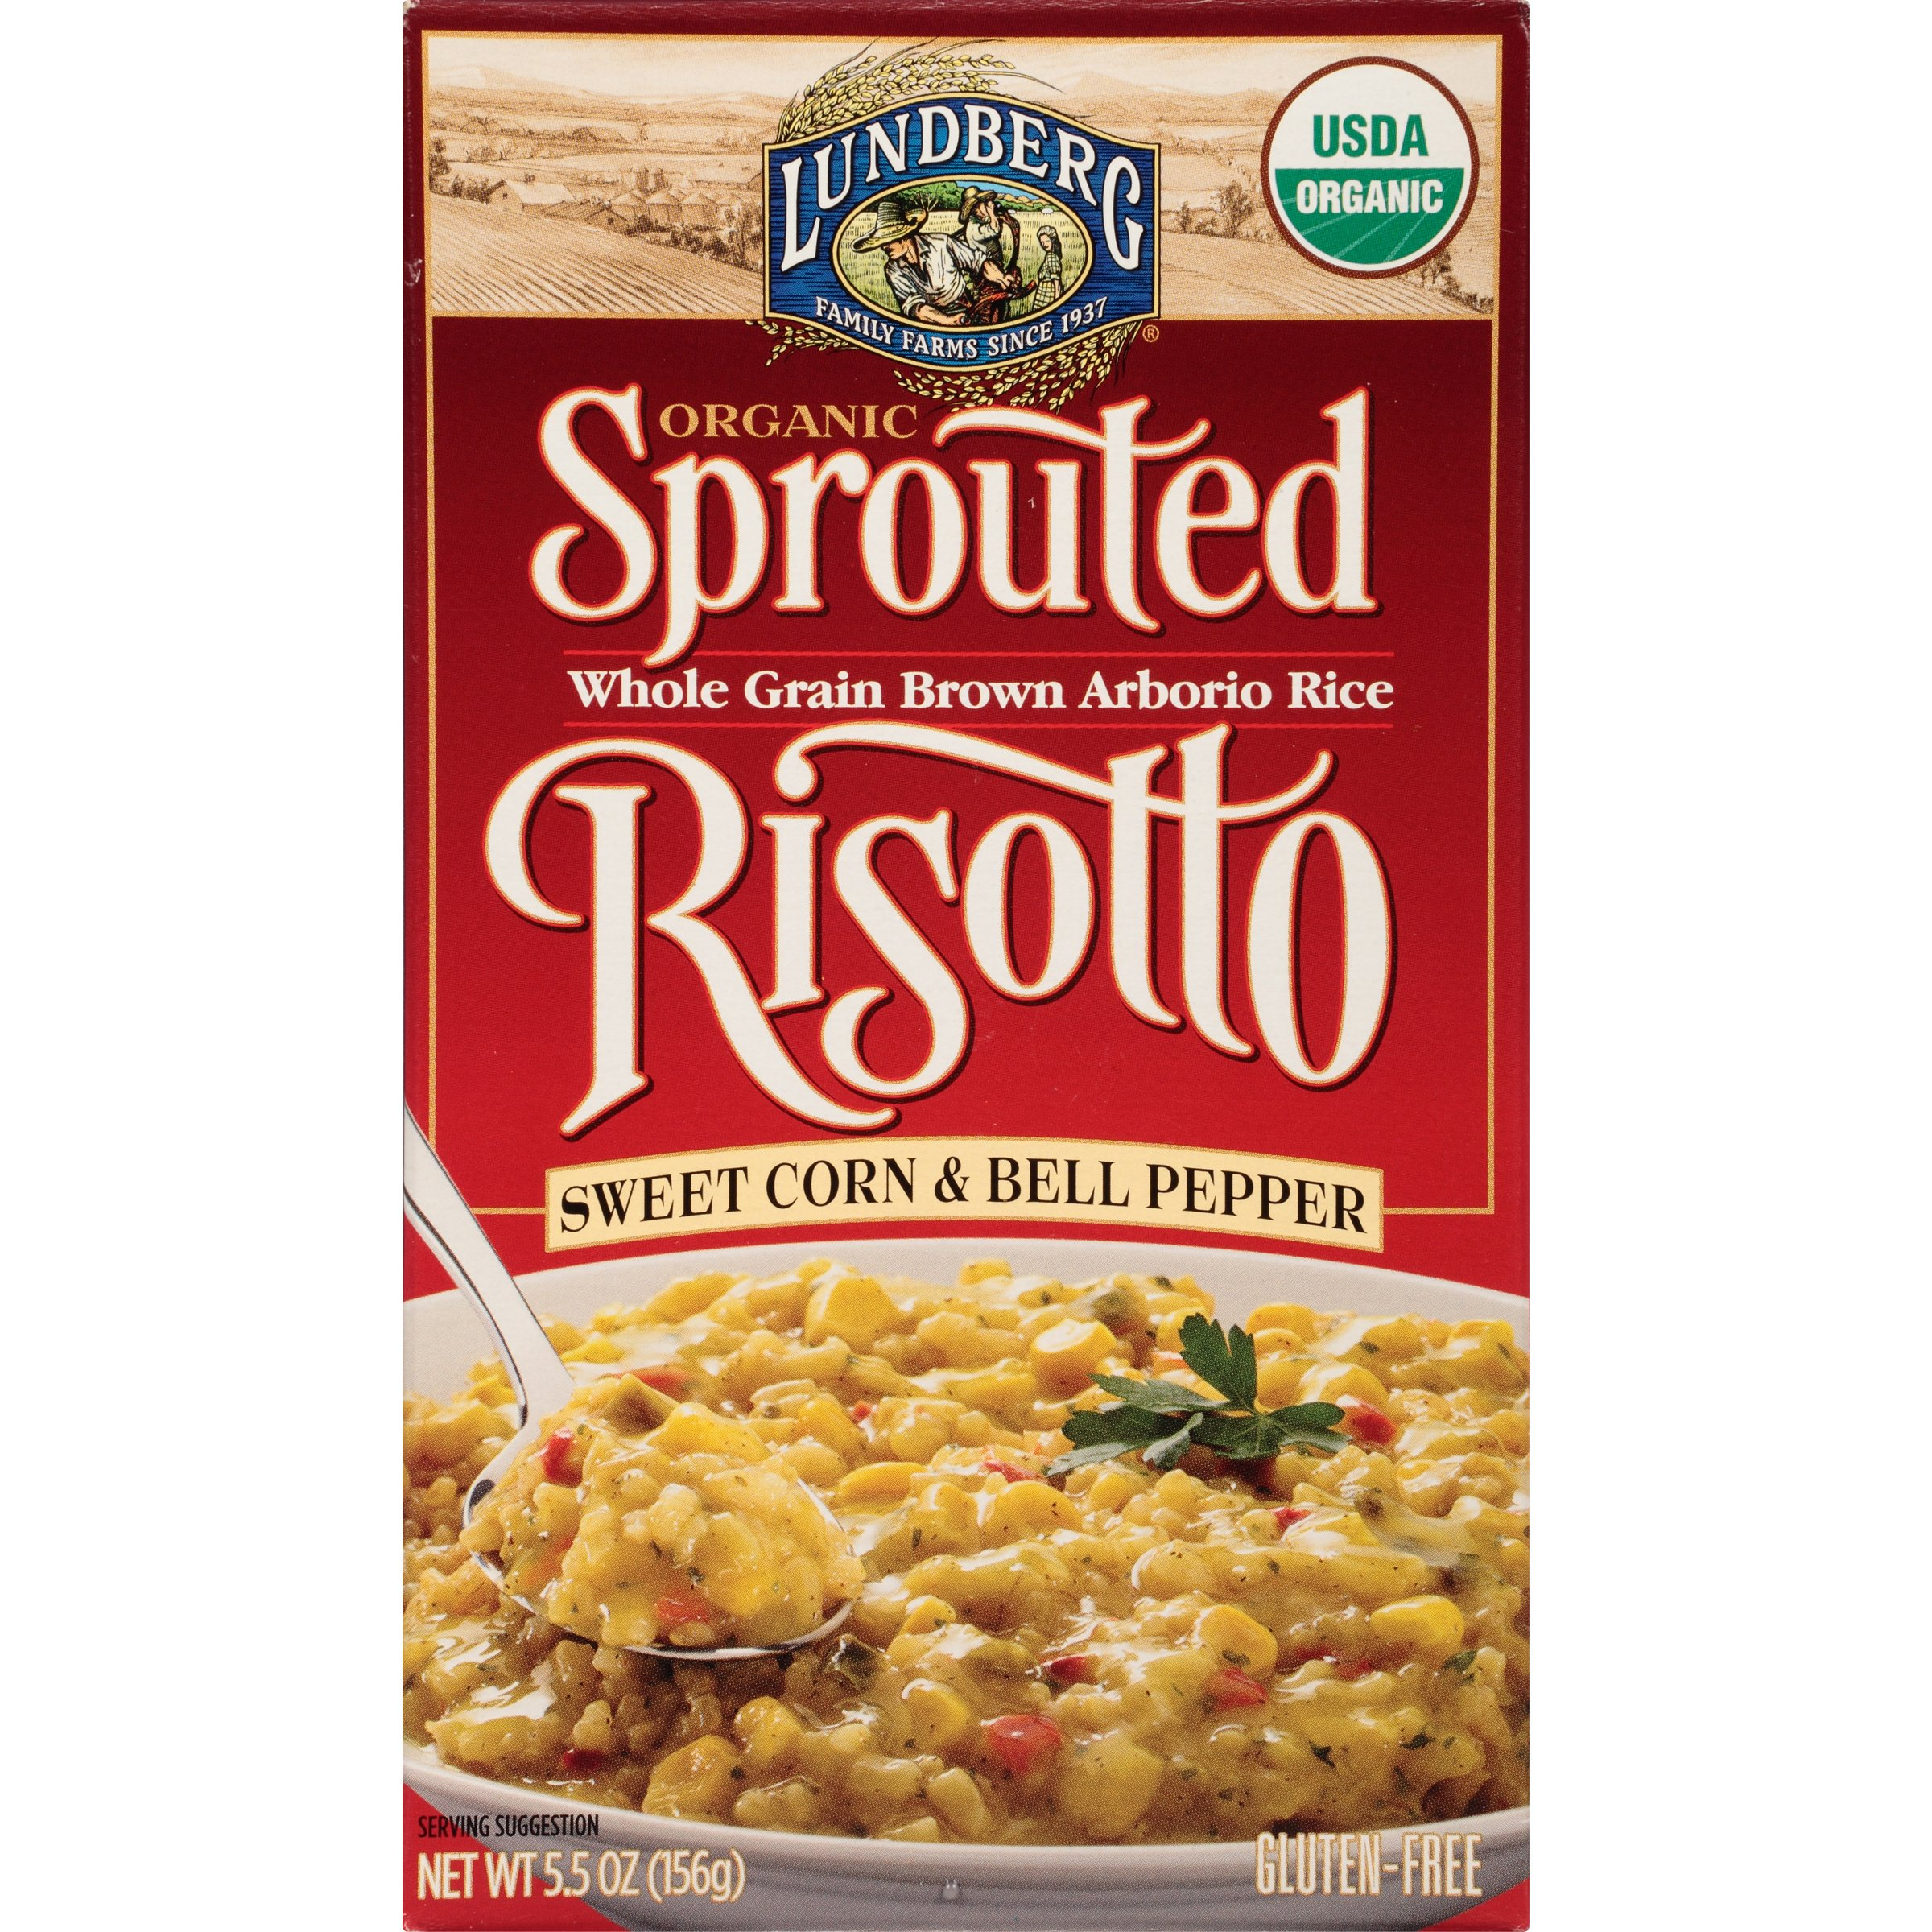 Lundberg Family Farms Organic Sprouted Risotto, Sweet Corn & Bell Peppers, 5.5 Ounce (Pack of 6)